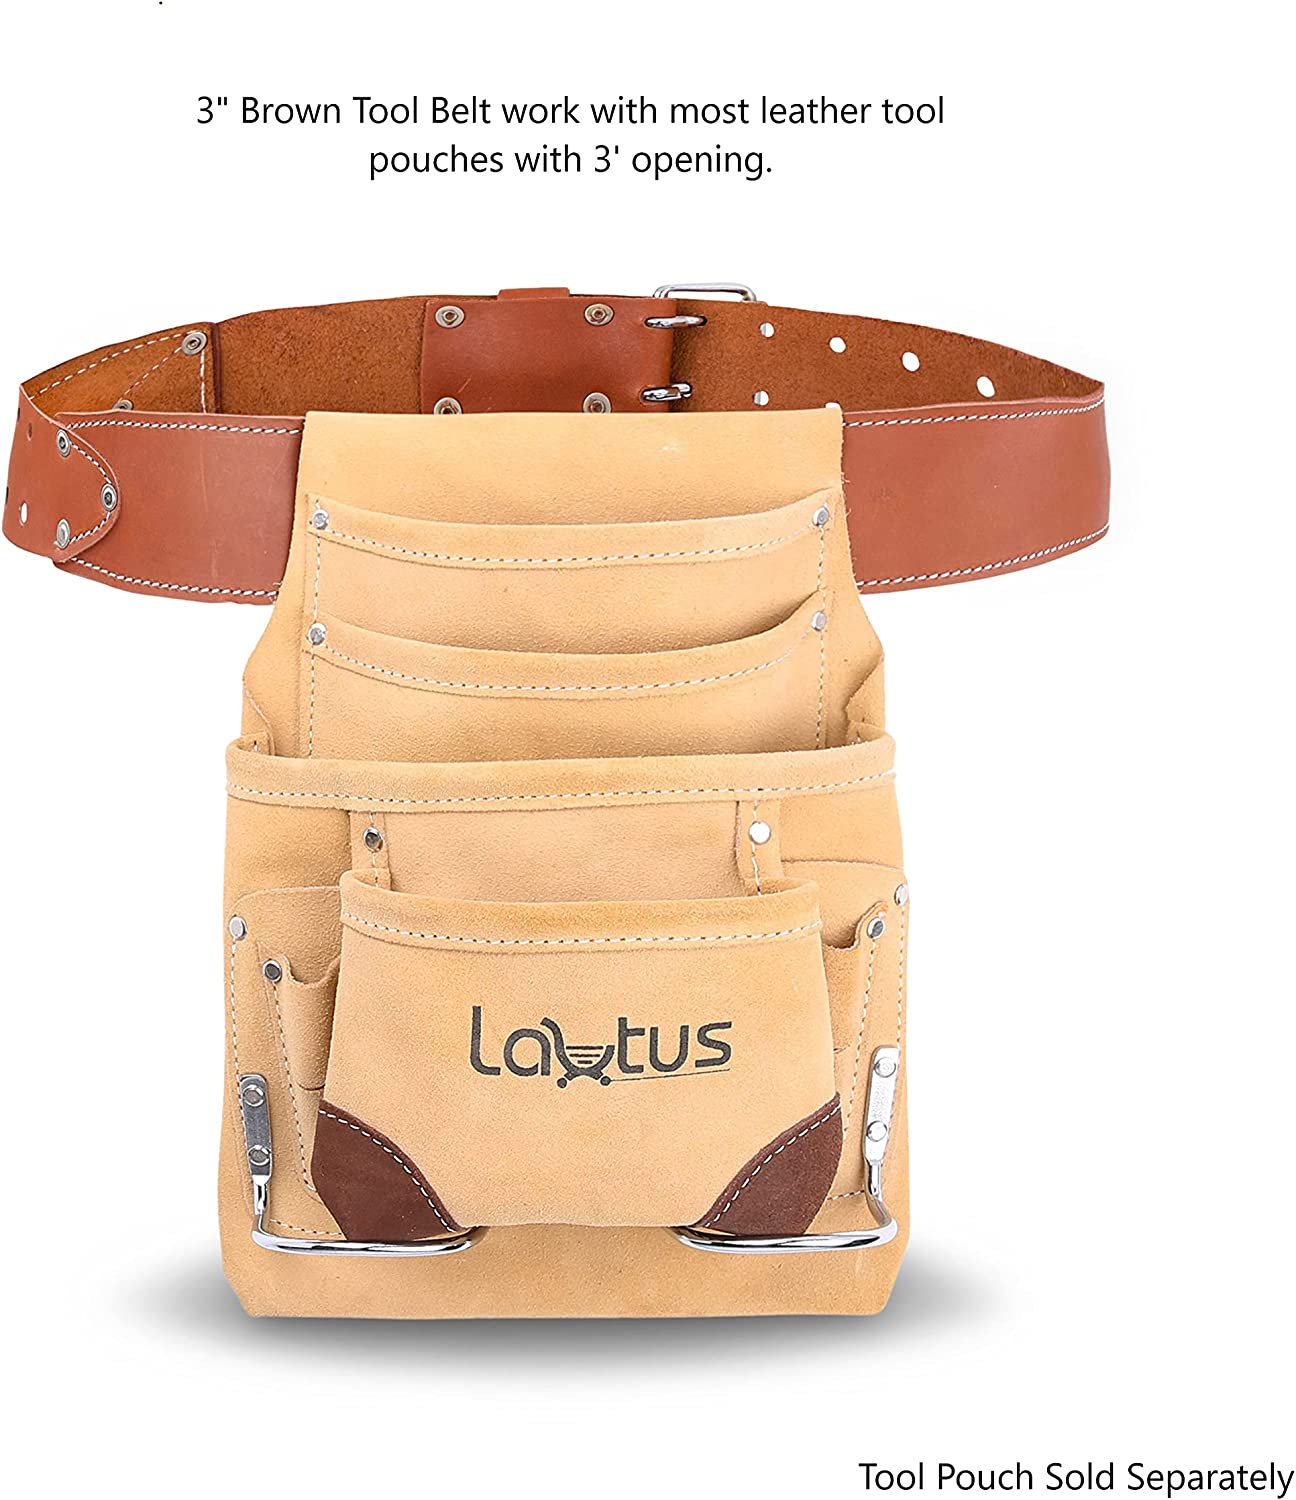 LAUTUS 3-Inch Tapered Work Belt in Heavy Oiled Tanned Leather| 32-Inch to 46-Inch | Brown|